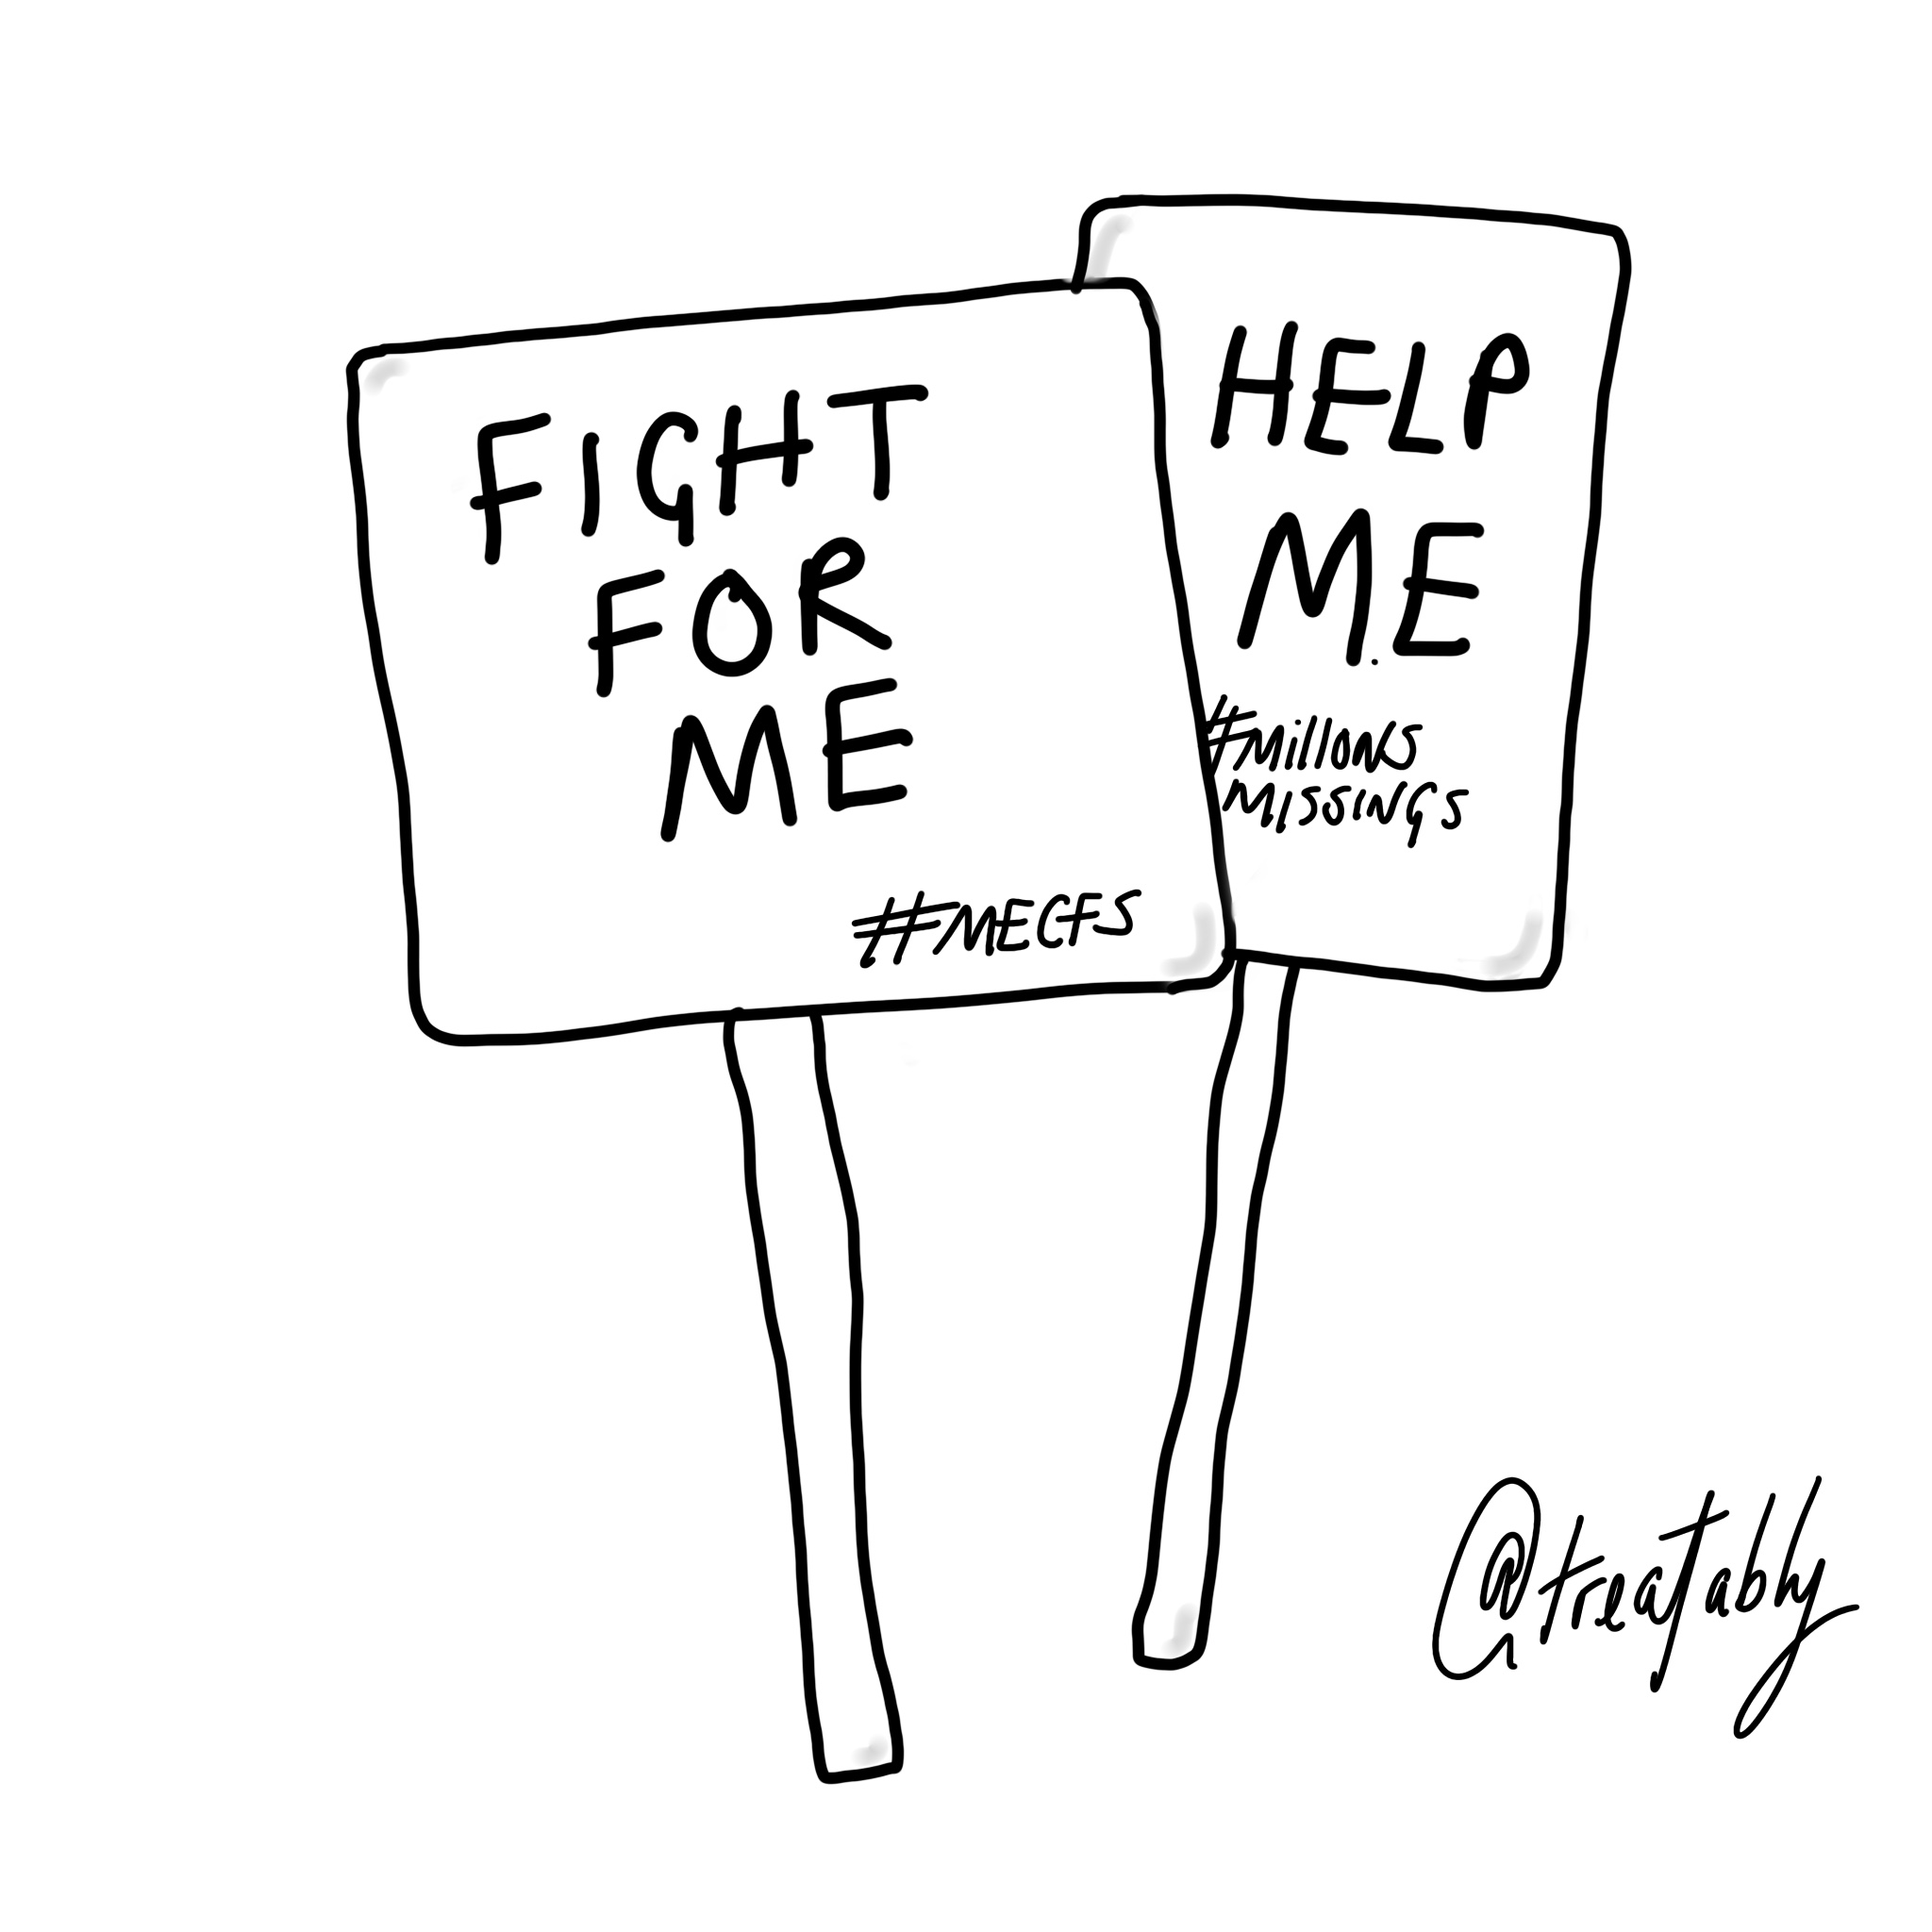 """two hand drawn signs with the slogans 'Fight for ME' and """"help ME' with the hashtags 'MECFS' and Millions missions"""